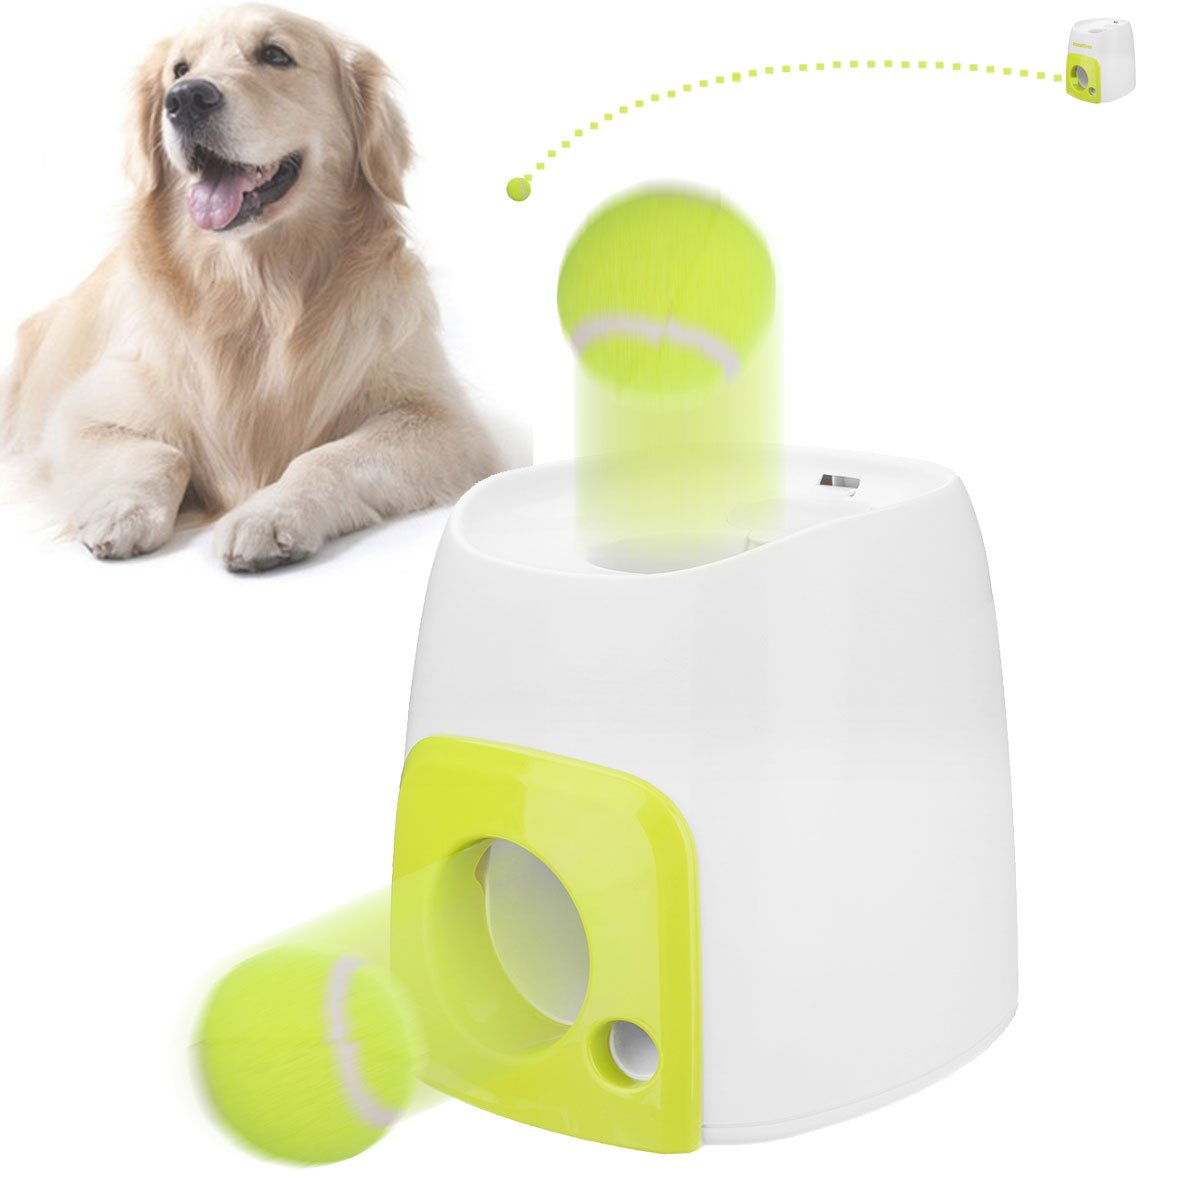 Includes 2 Balls Hyper Pet Toy Throw-n-go Ball Launcher for Dog